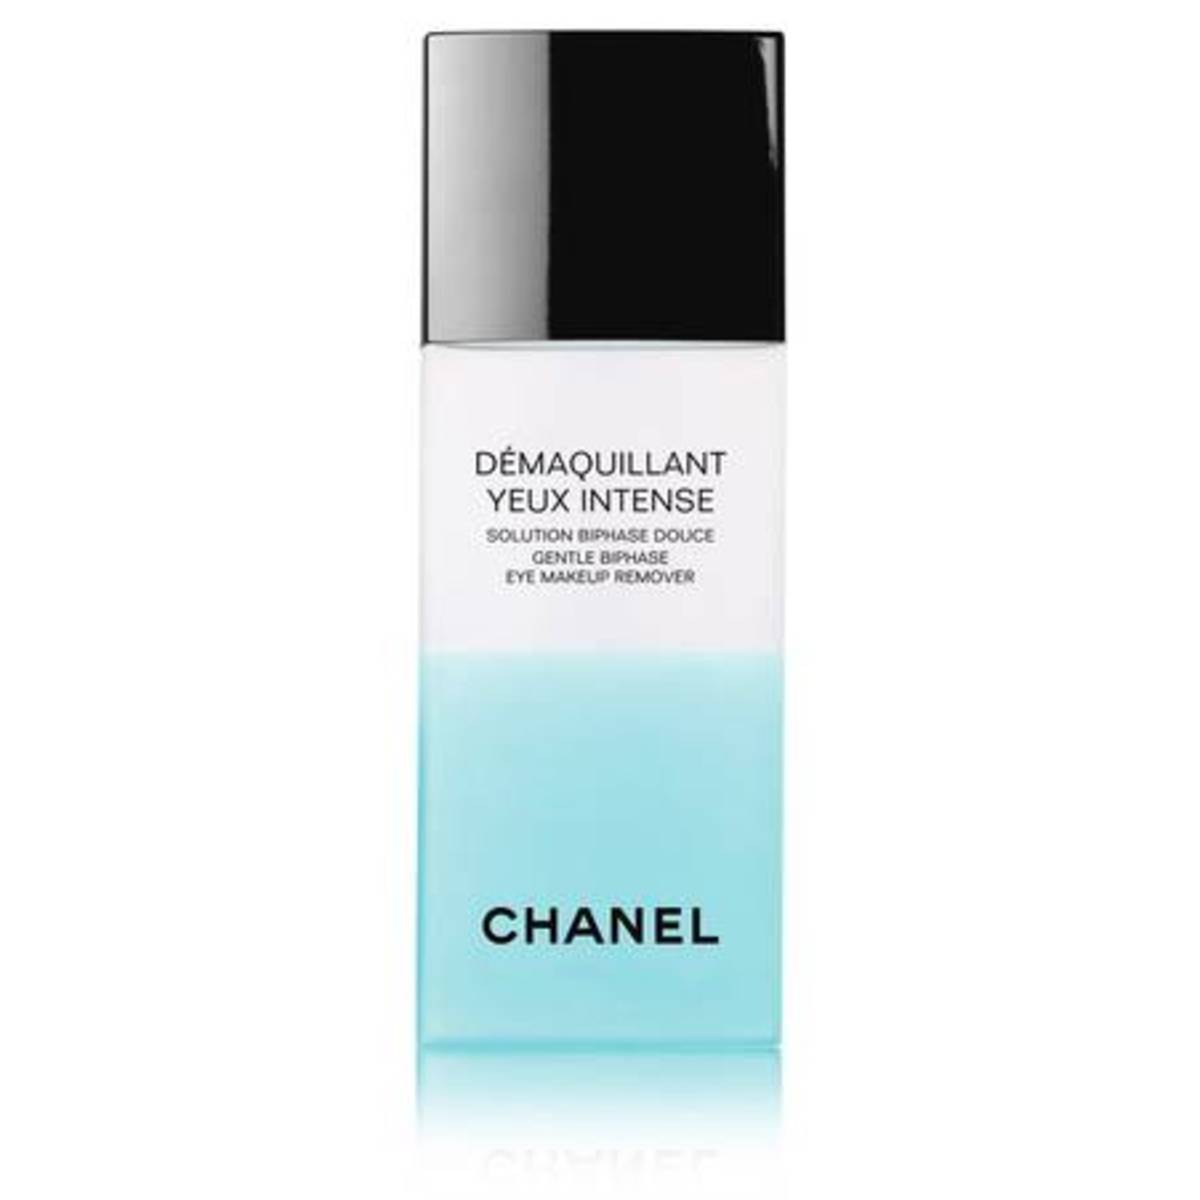 Demaquillant-yeux-intense-solution-biphase-douce-Chanel_reference2